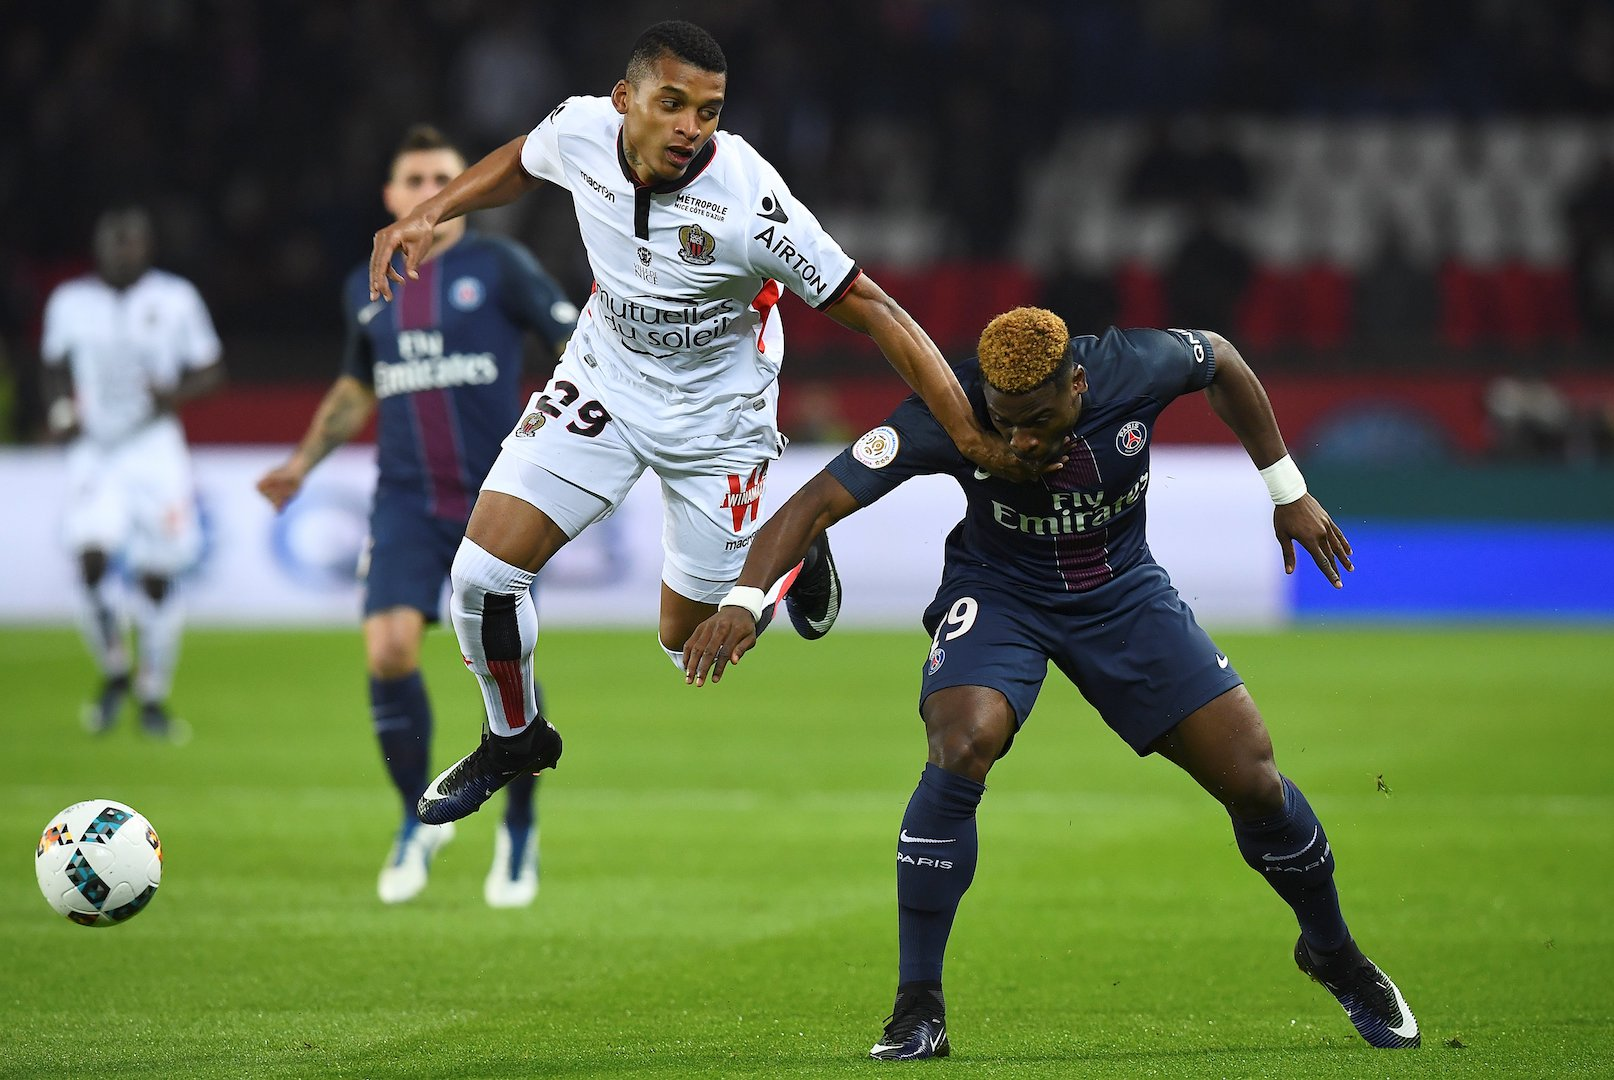 Nice's Brazilian defender Dalbert Henrique (L) vies with Paris Saint-Germain's Ivorian defender Serge Aurier during the French L1 football match between Paris Saint-Germain and Nice at the Parc des Princes stadium in Paris on Deecmber 11, 2016. / AFP / FRANCK FIFE (Photo credit should read FRANCK FIFE/AFP/Getty Images)